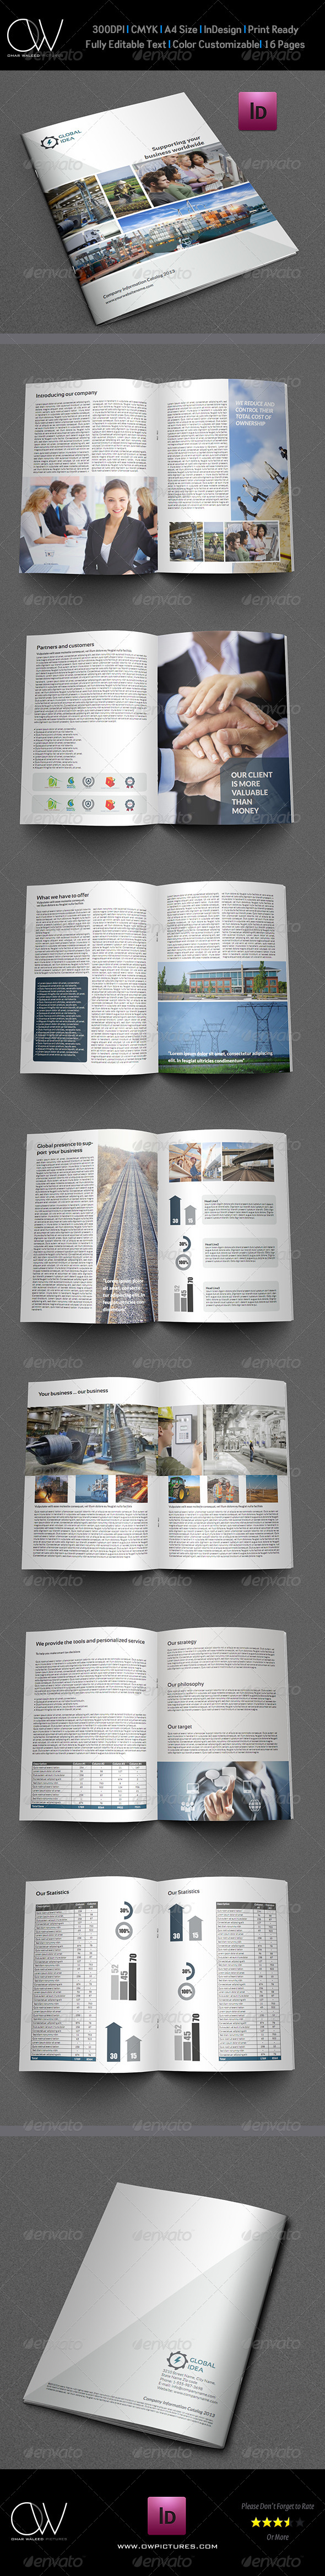 Company Brochure Template Vol.5 - 16 Pages - Brochures Print Templates